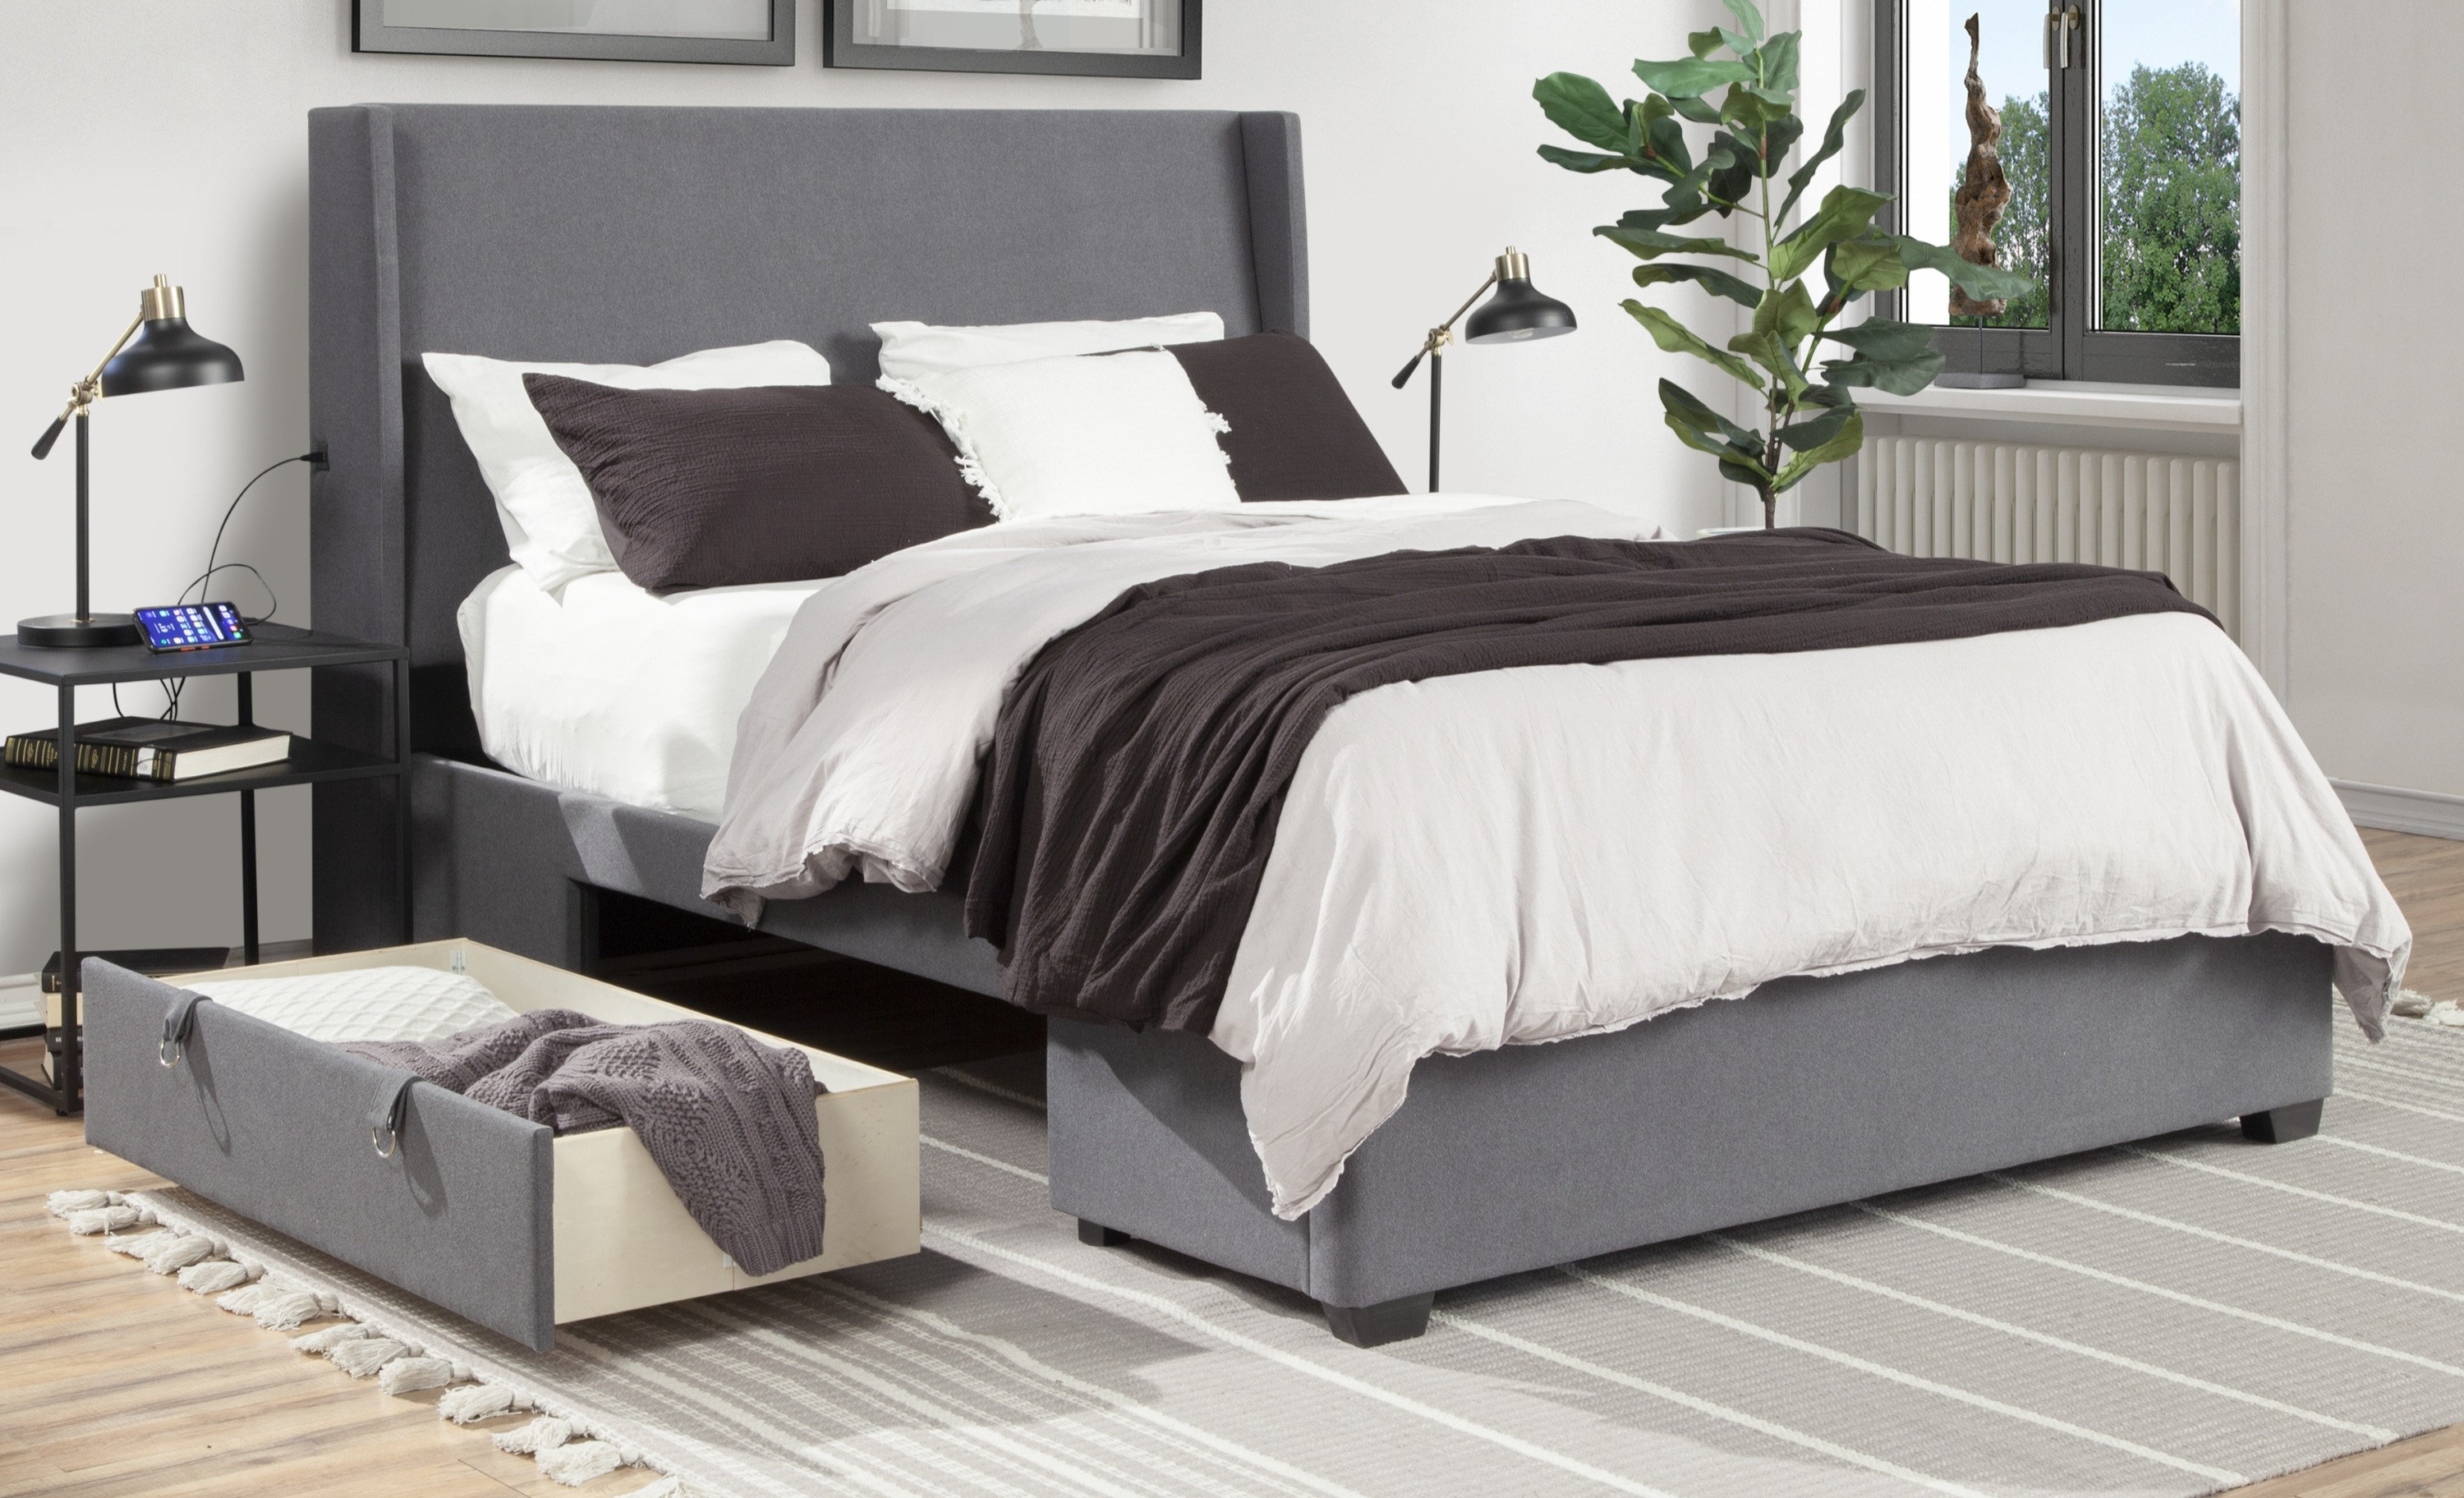 comfort%20HB%20drawer%20all%20out%20angl